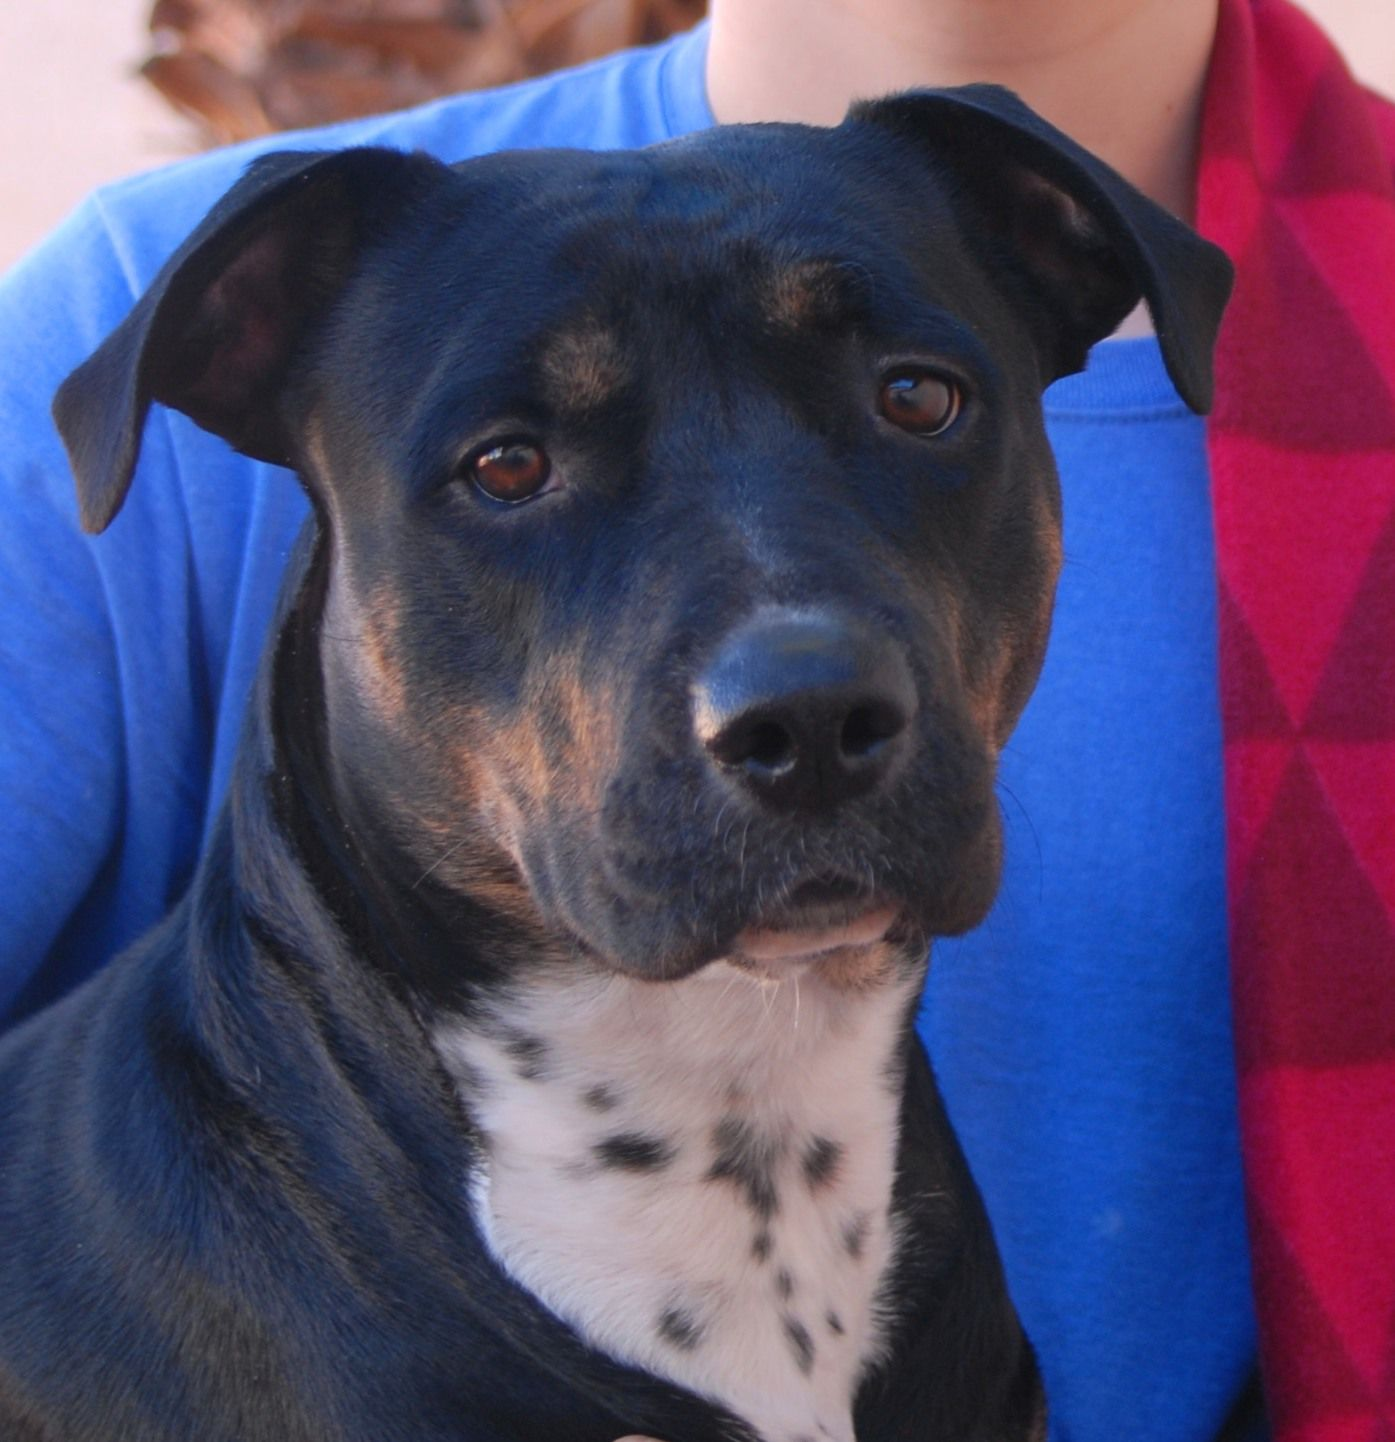 Annie, a young with expressive eyes and new hope for her future: http://nevadaspca.blogspot.com/2014/12/annie.html